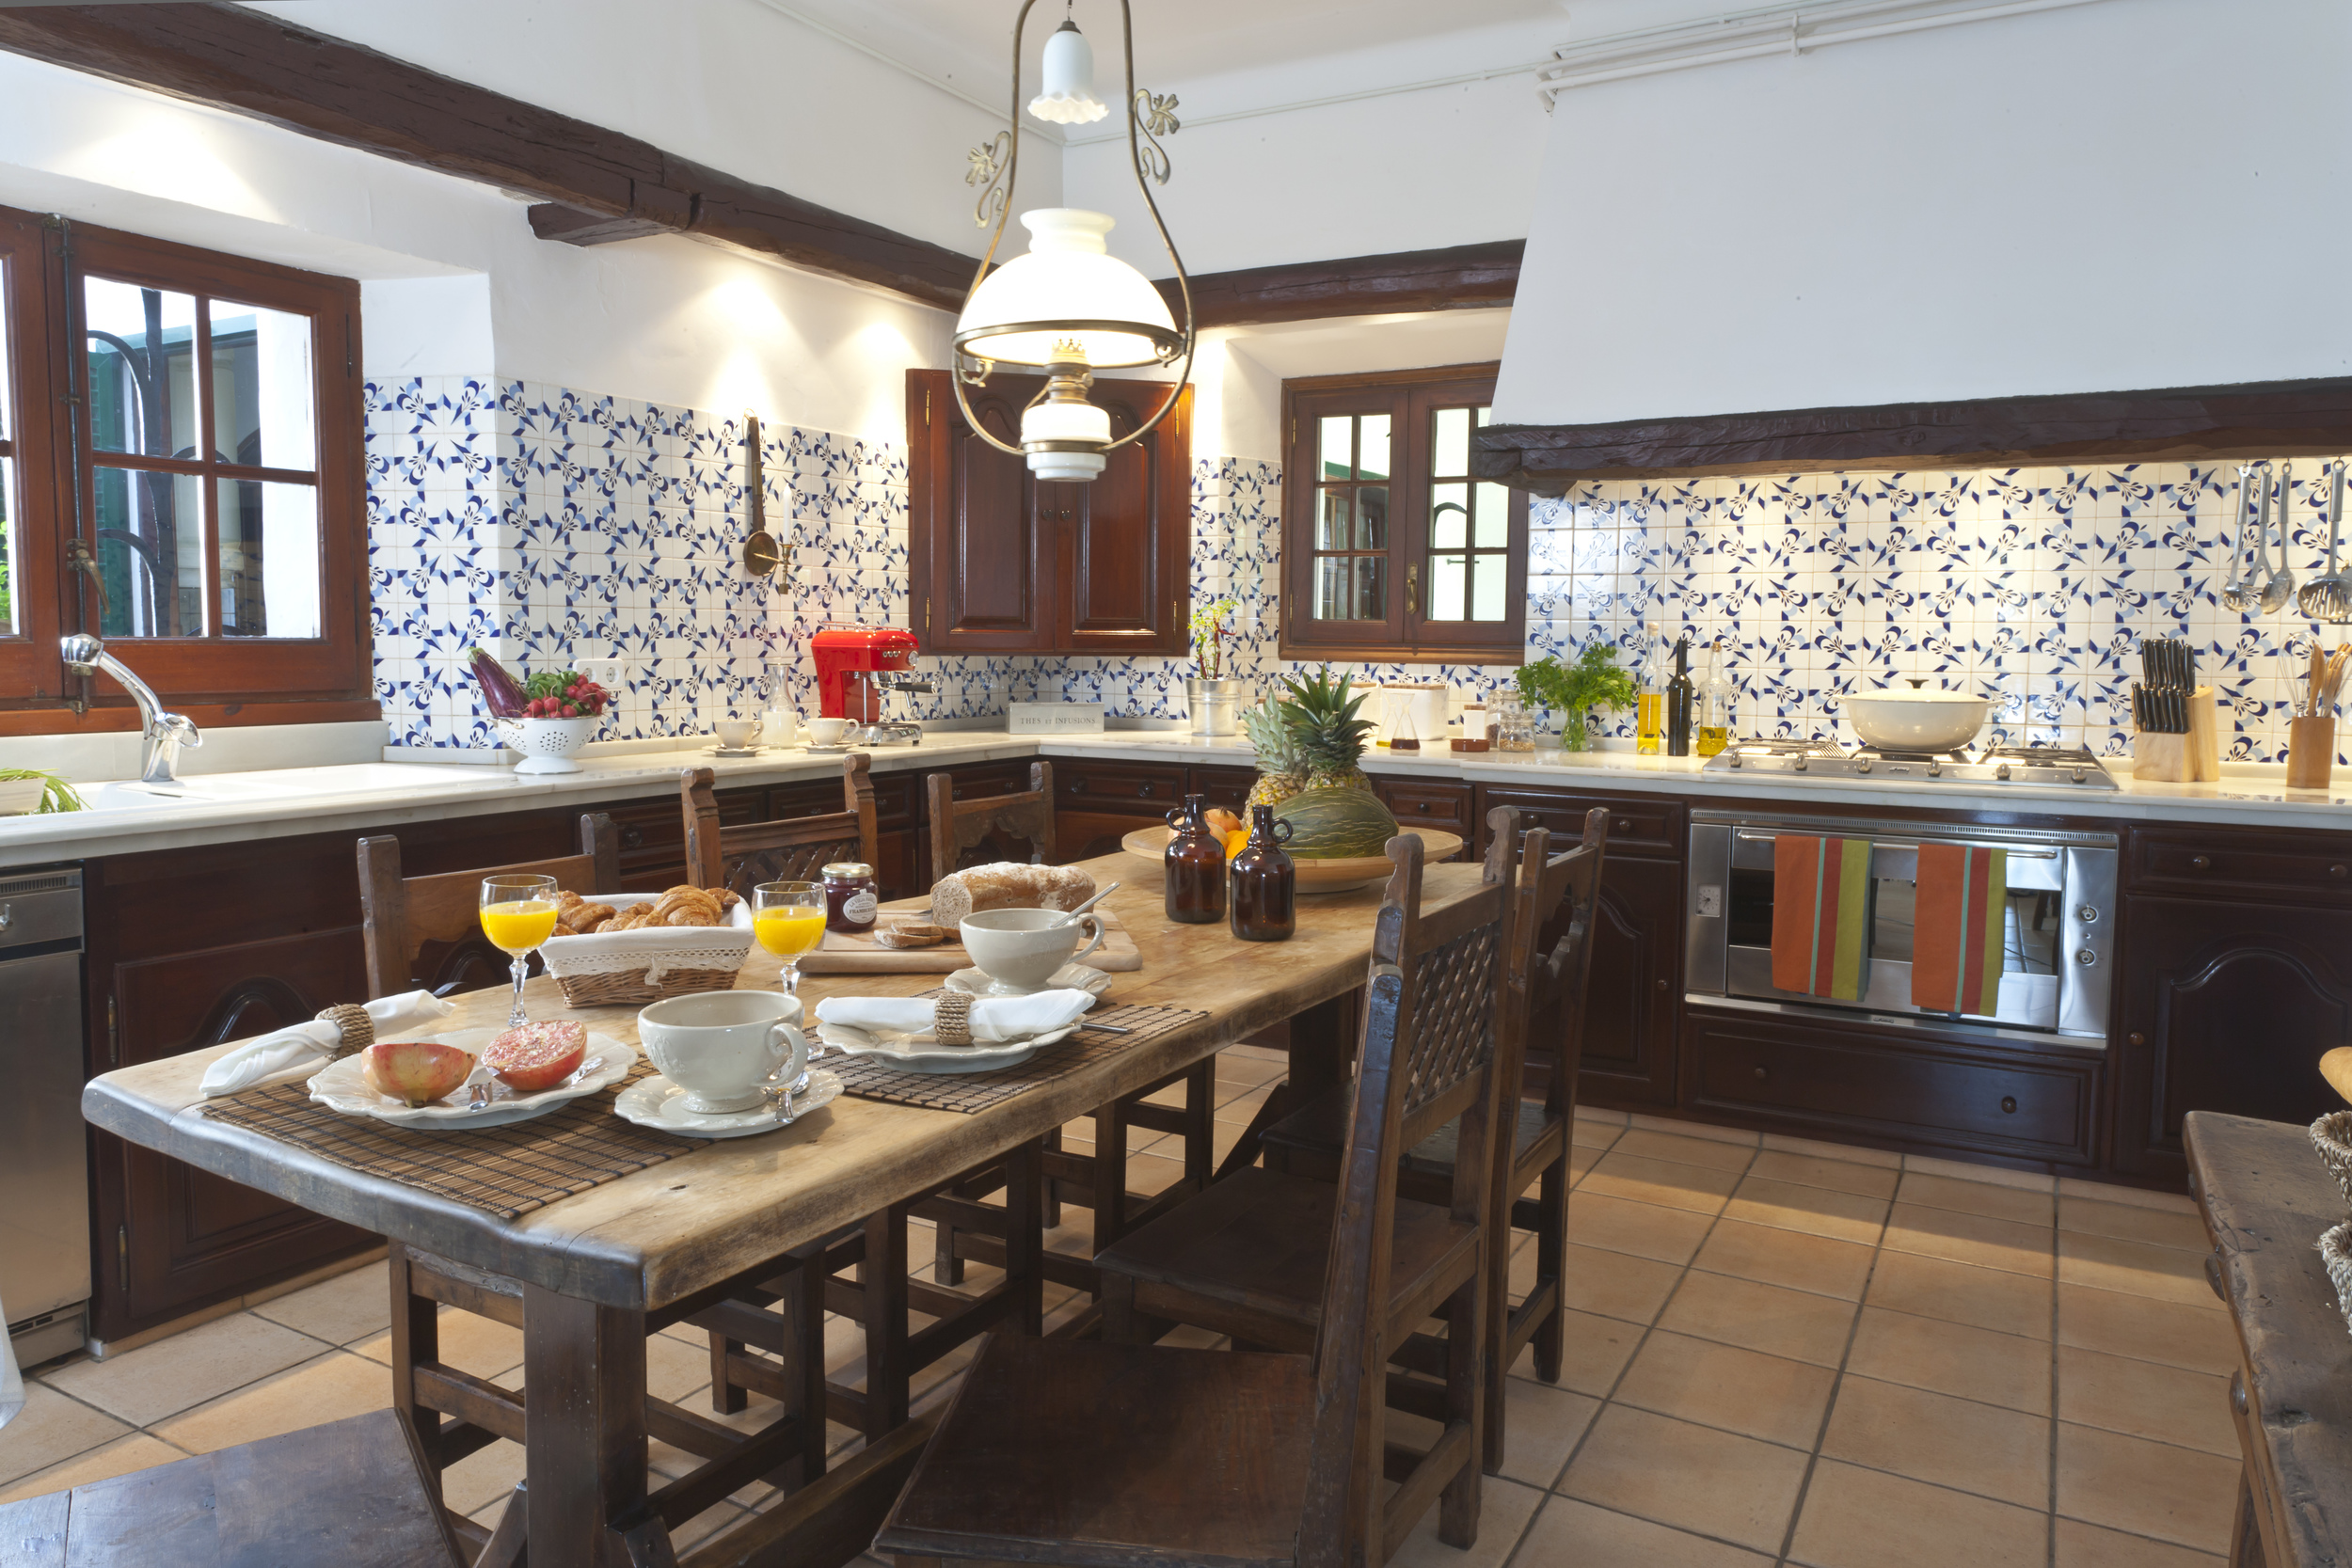 44 Masia Pairal fully equipped kitchen.jpg